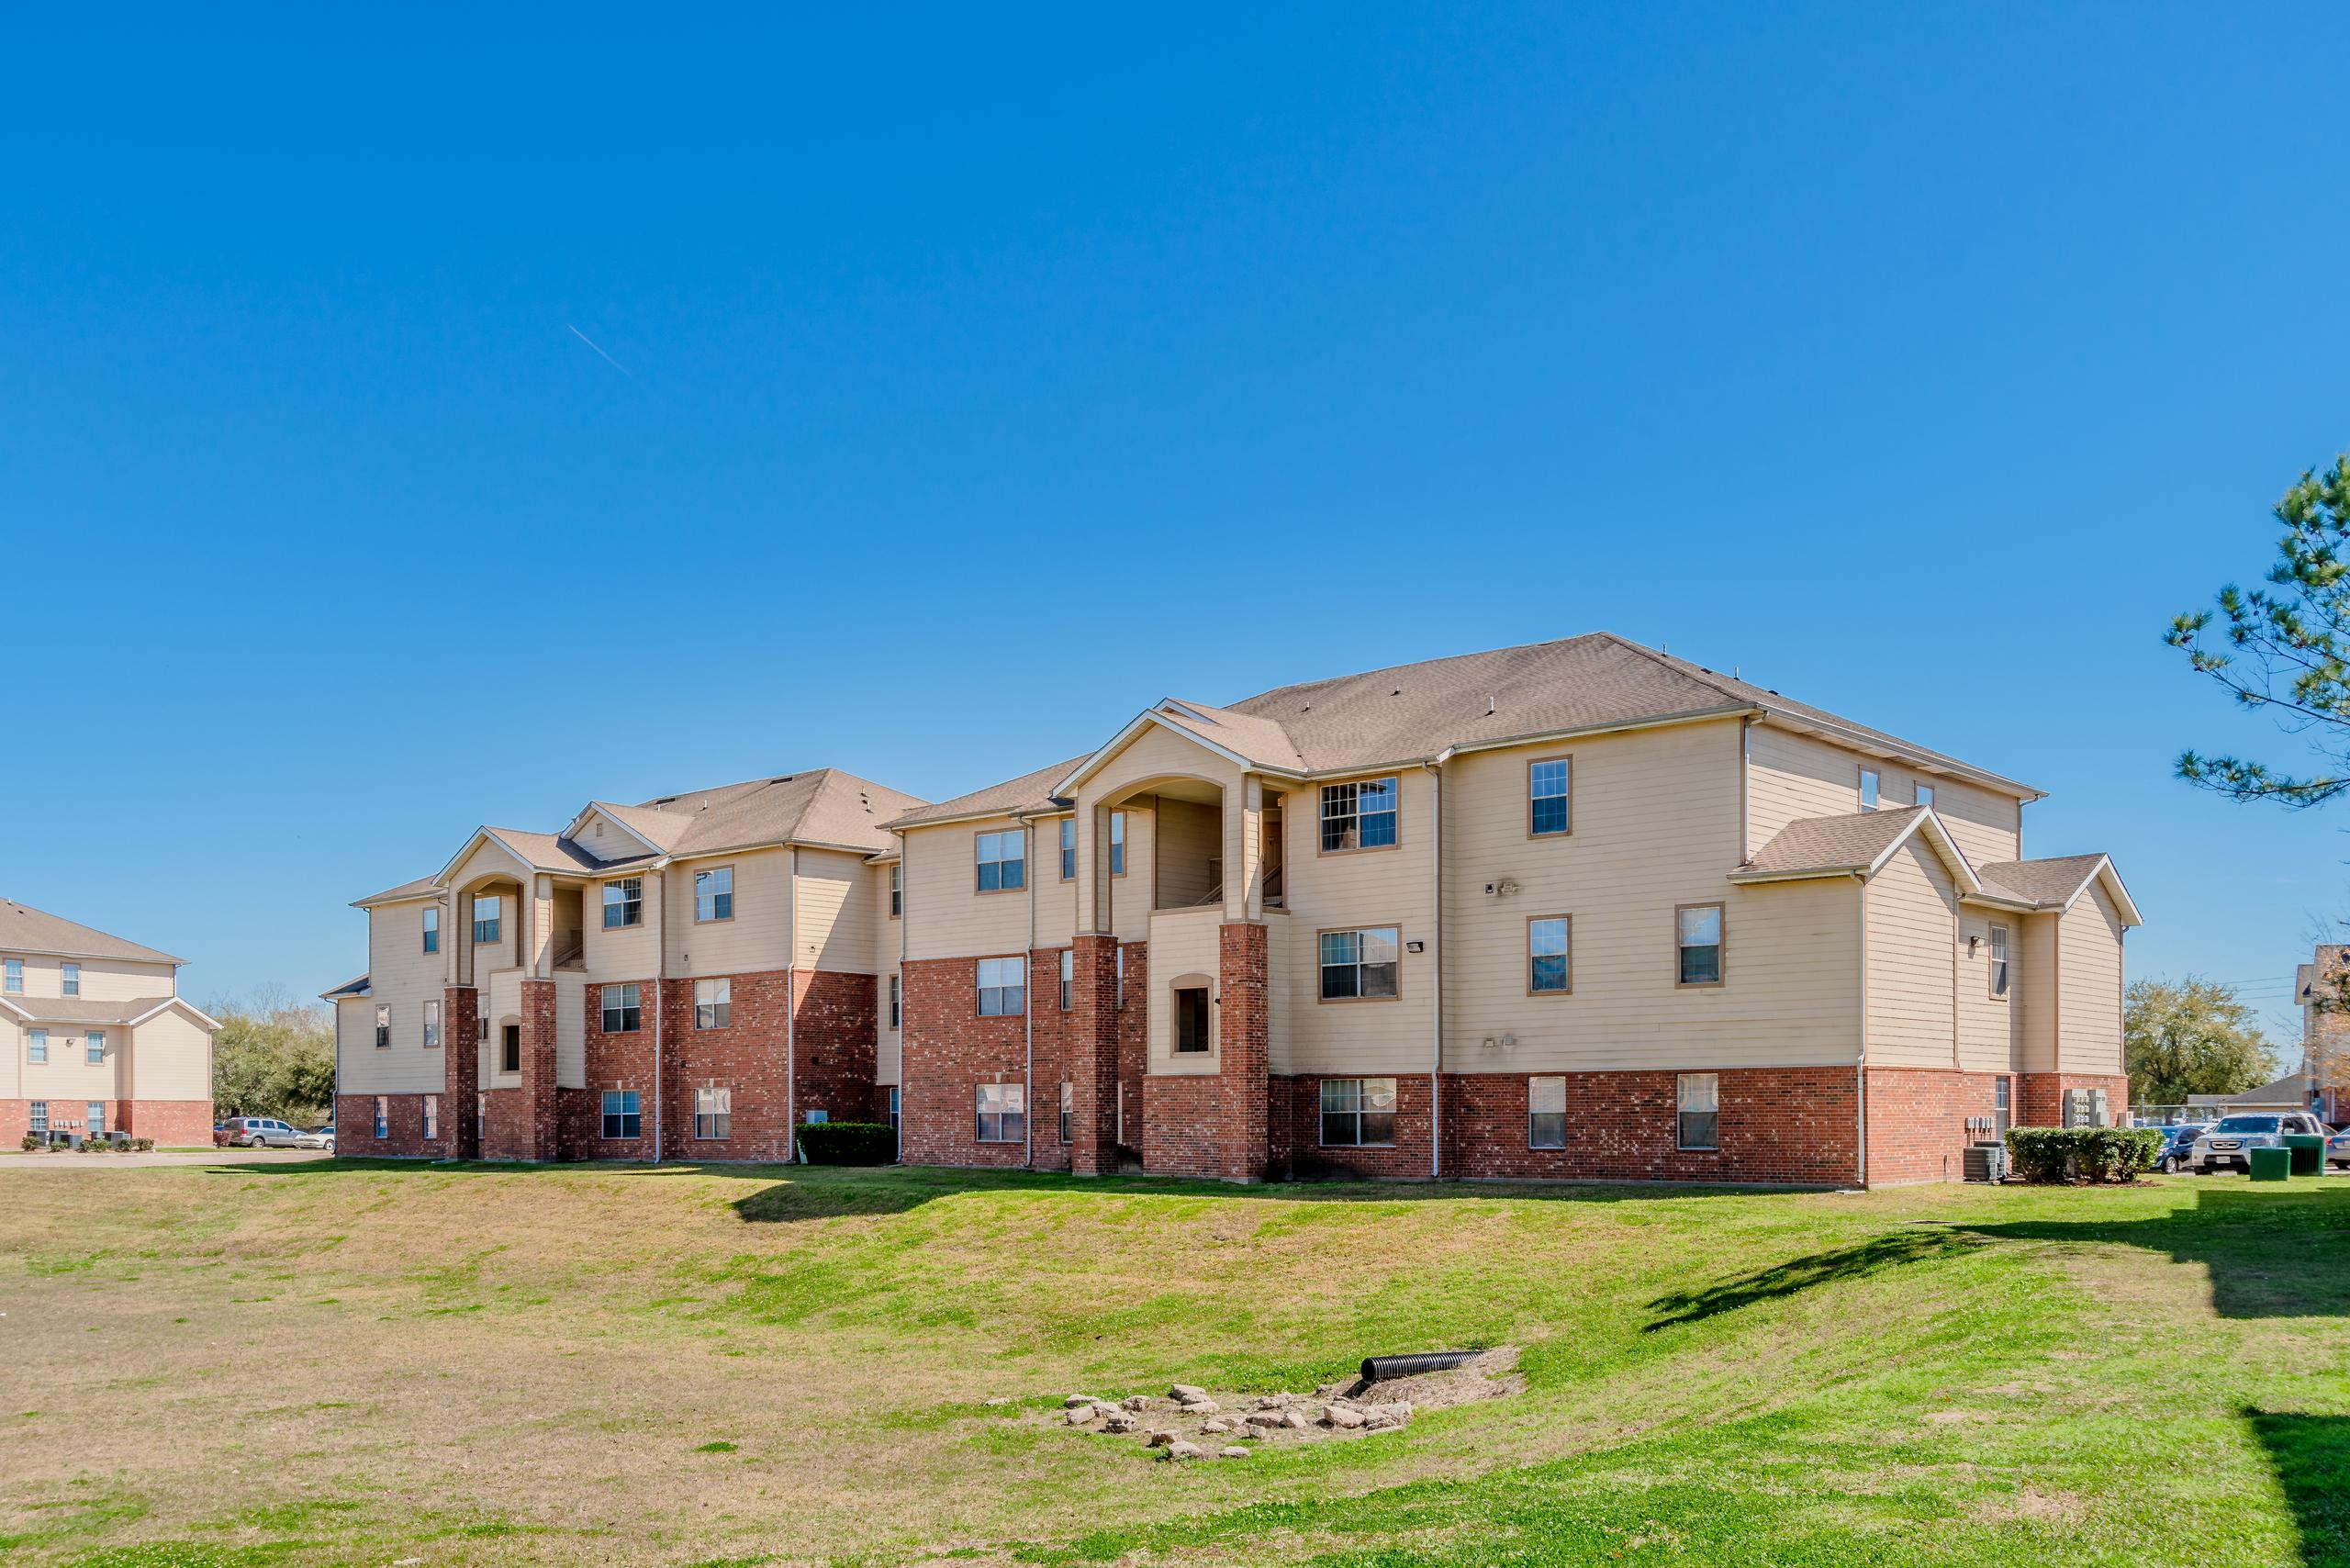 Dominium Takes Ownership of 260-Unit Parkside Point, Plan ...